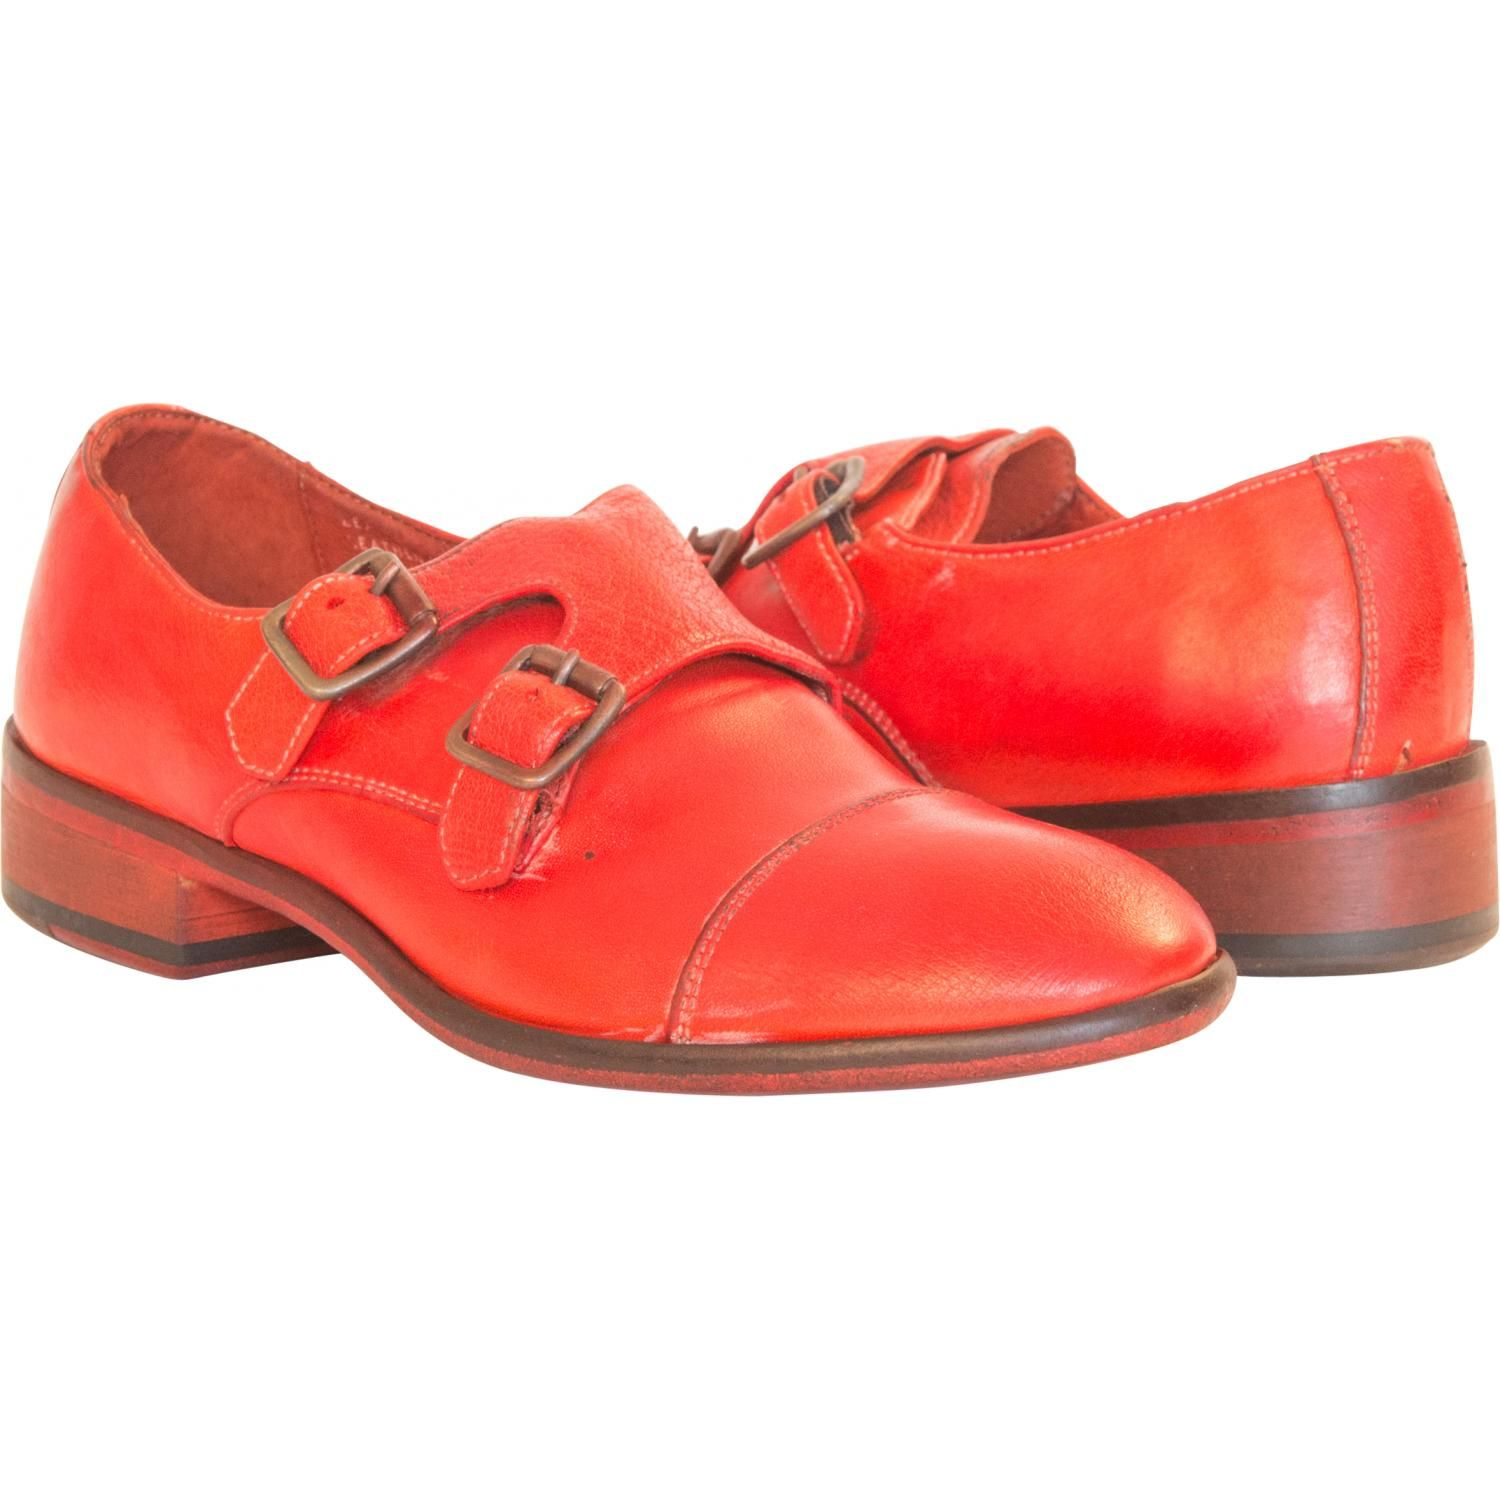 Courtney Dip Dyed Red Leather Double Monk Strap Shoes full-size #1